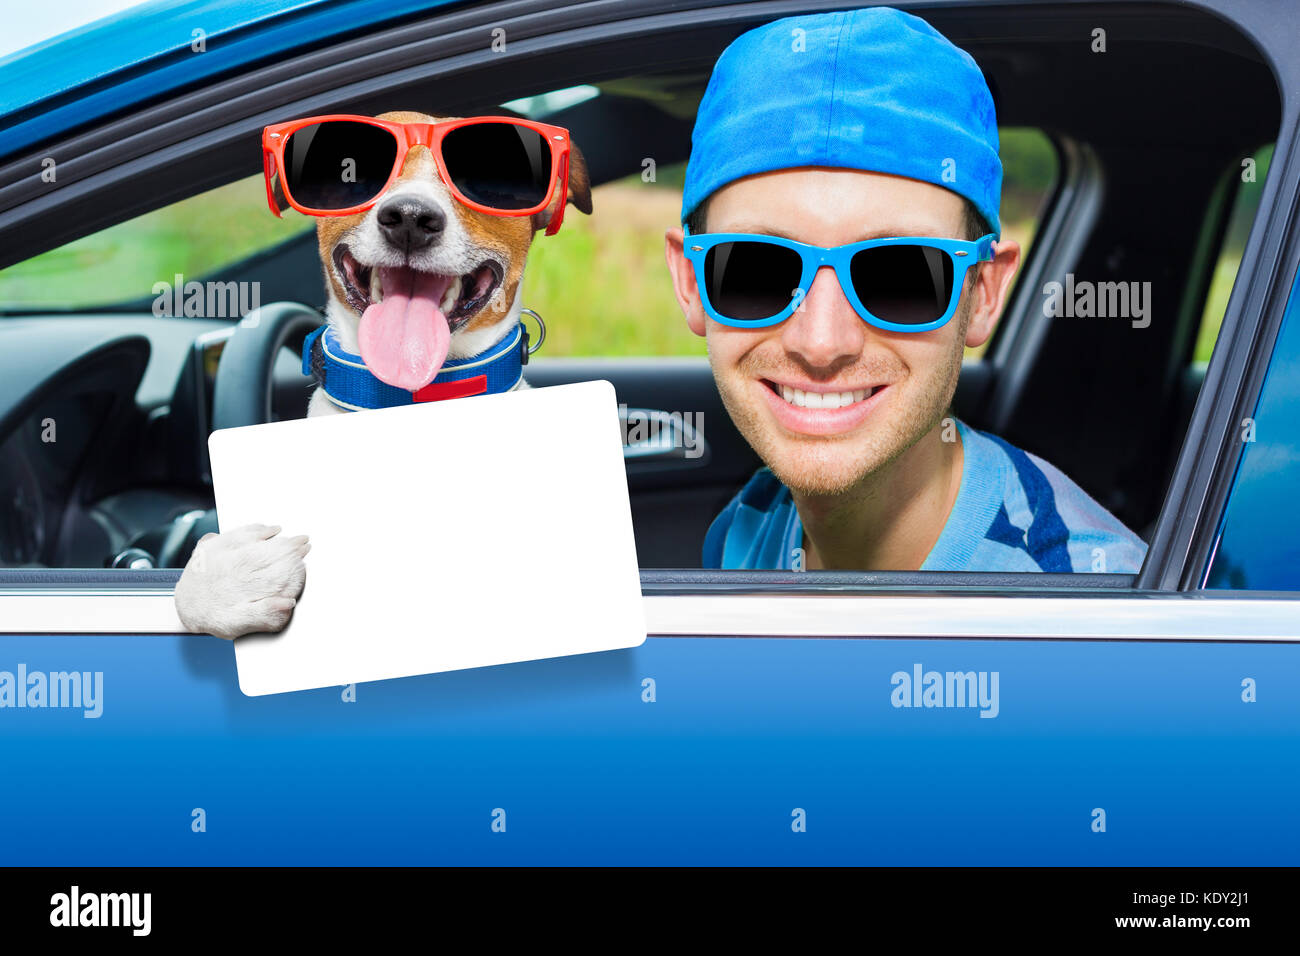 dog in a car looking through window with Driving instructor showing a blank and empty  drivers license - Stock Image